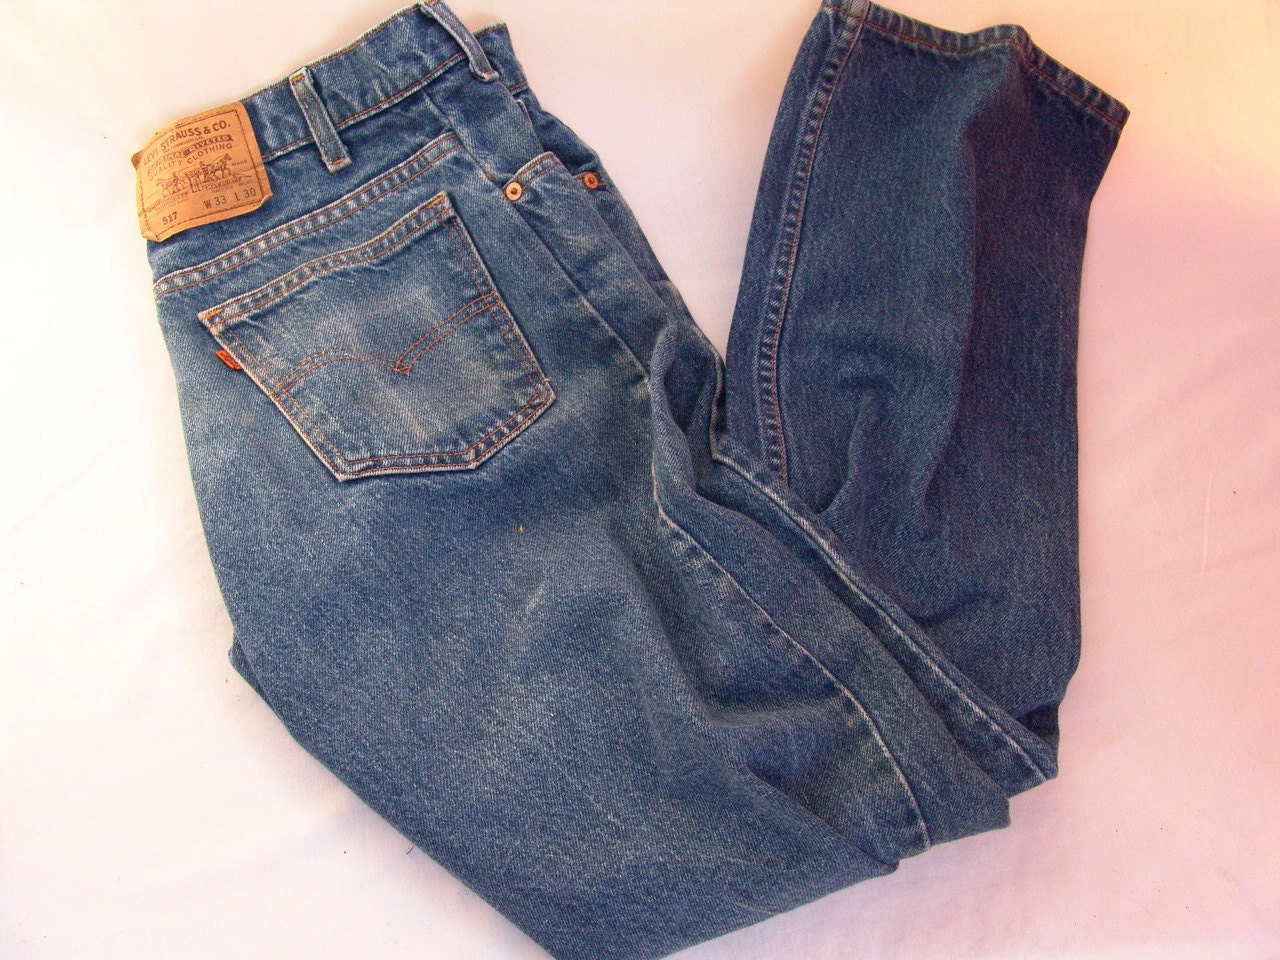 Vintage Levis 517 Denim Blue Jeans 33 x 30 Great Fade